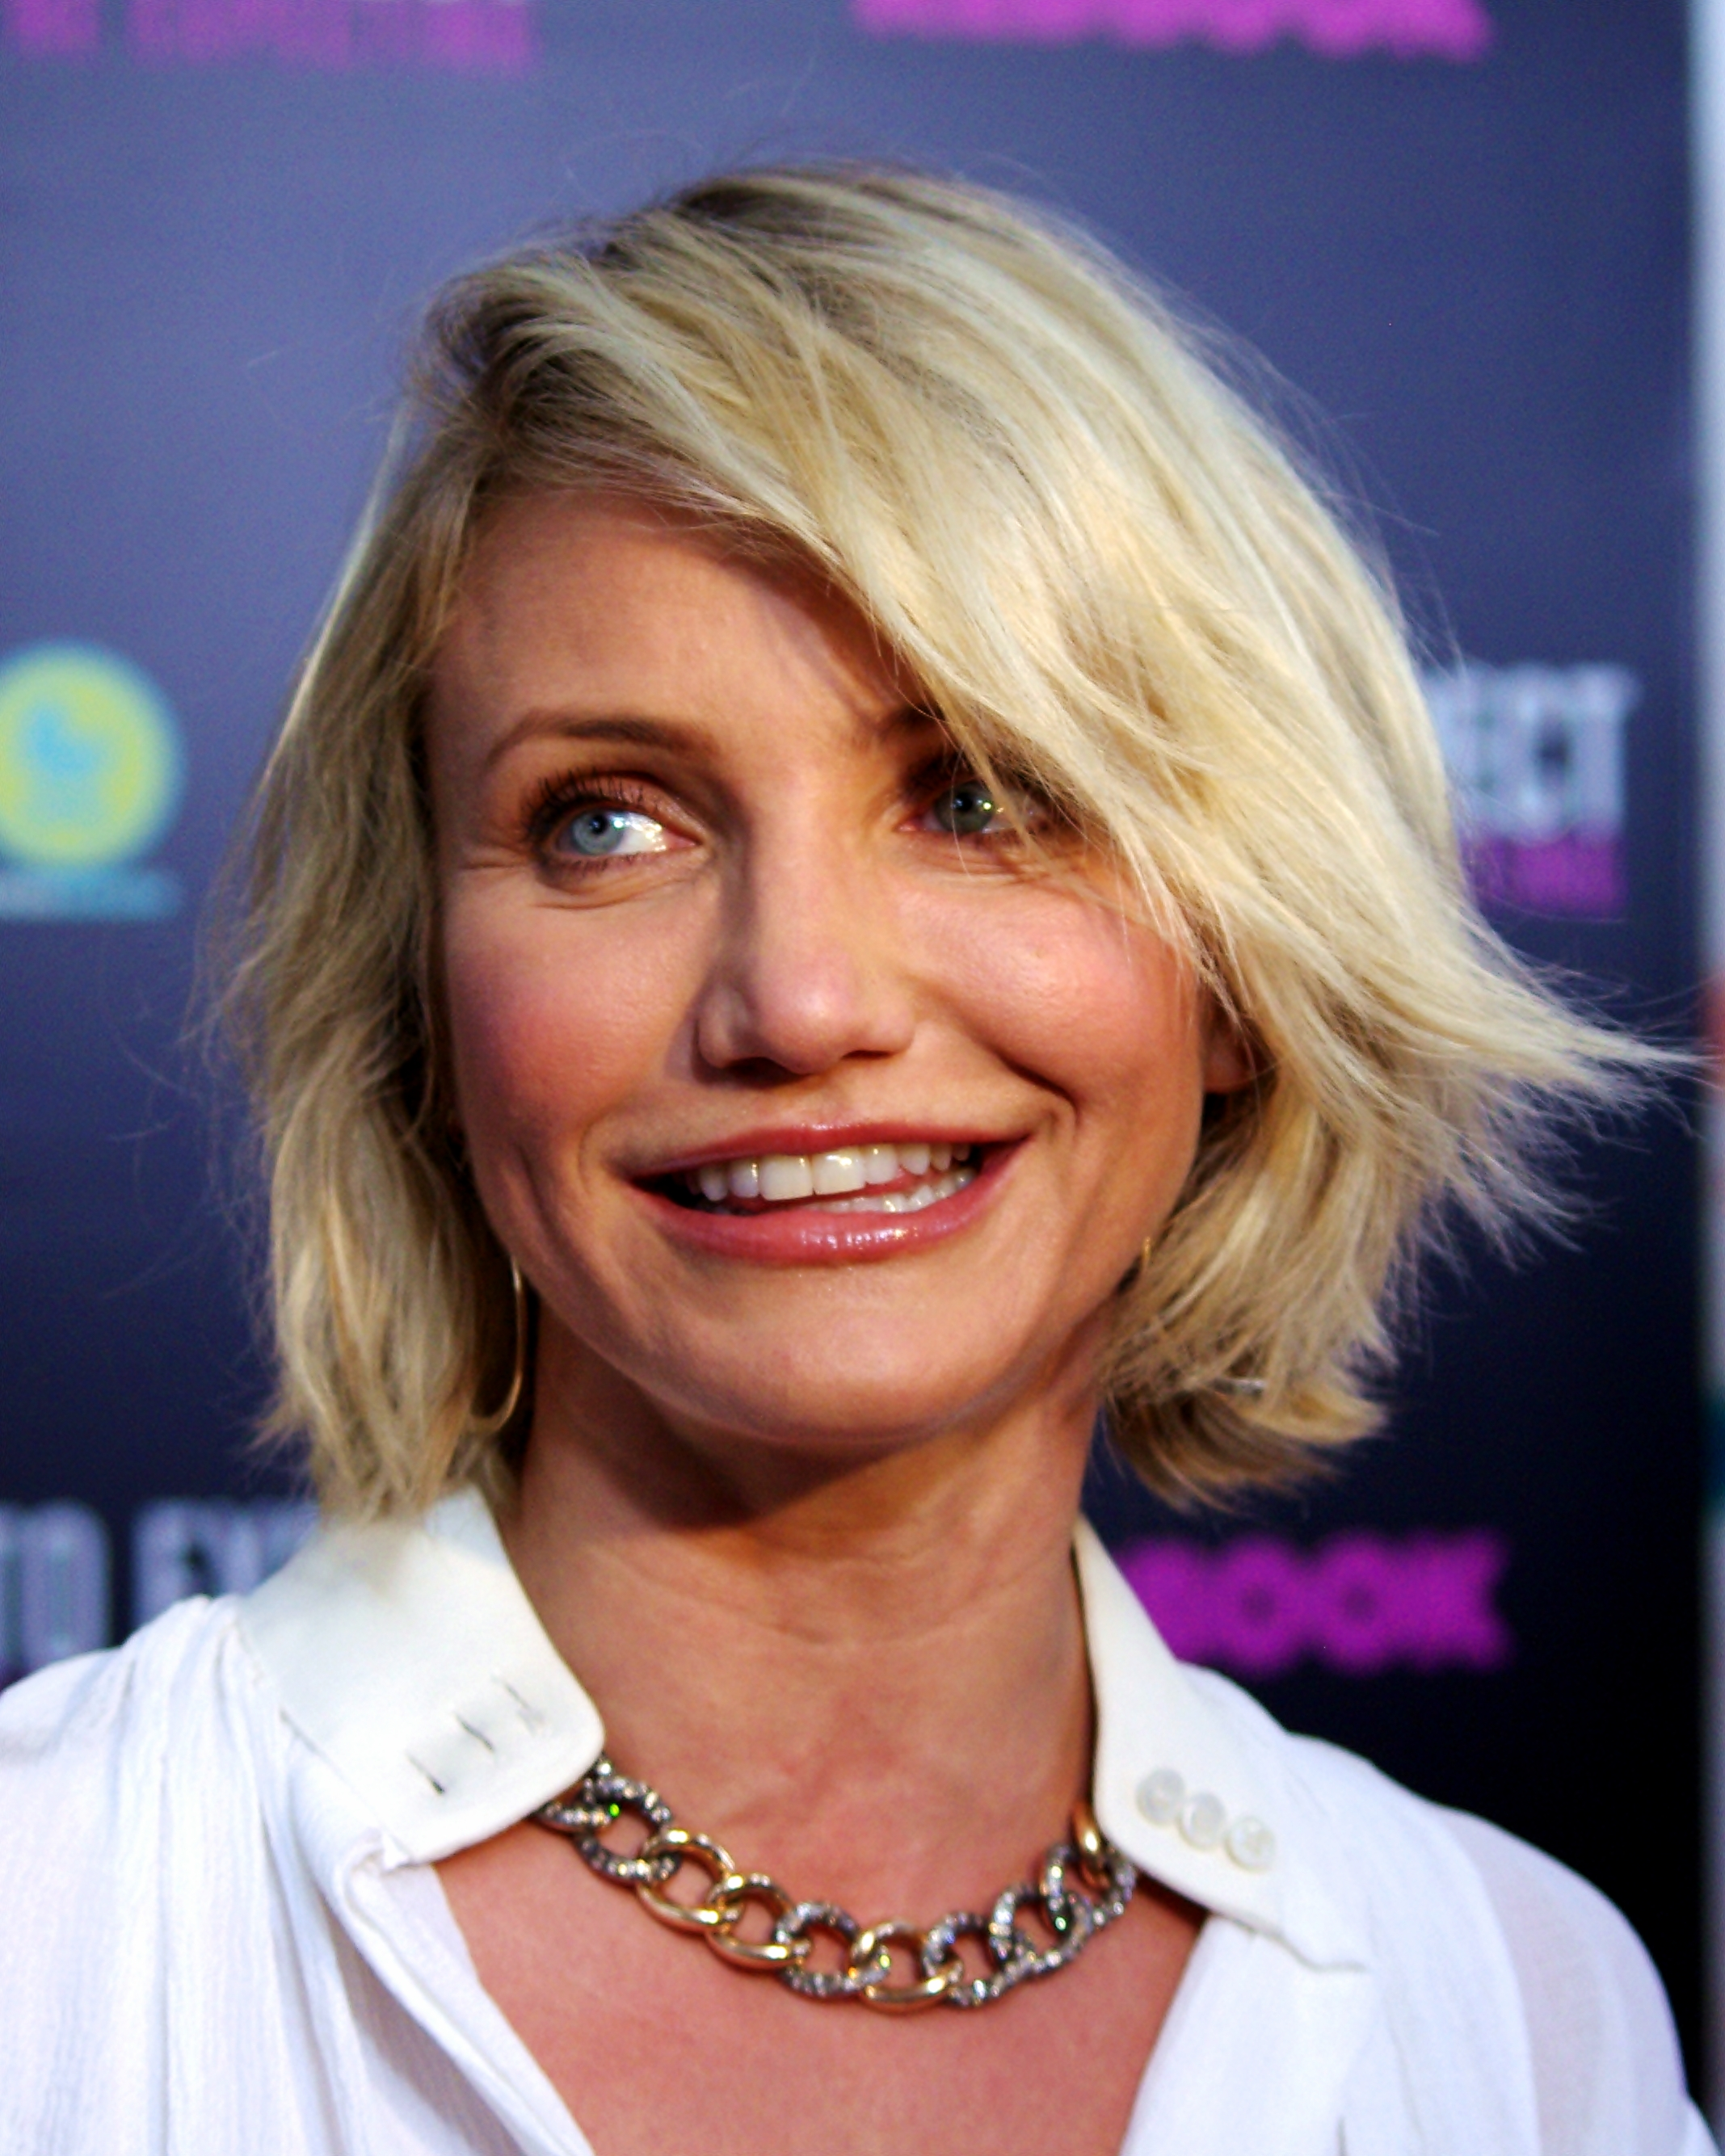 cameron diaz heightcameron diaz instagram, cameron diaz movies, cameron diaz young, cameron diaz mask, cameron diaz films, cameron diaz height, cameron diaz wiki, cameron diaz filme, cameron diaz book, cameron diaz style, cameron diaz рост, cameron diaz body book, cameron diaz vse filmi, cameron diaz wikipedia, cameron diaz биография, cameron diaz the holiday, cameron diaz фото, cameron diaz дети, cameron diaz movies list, cameron diaz biceps